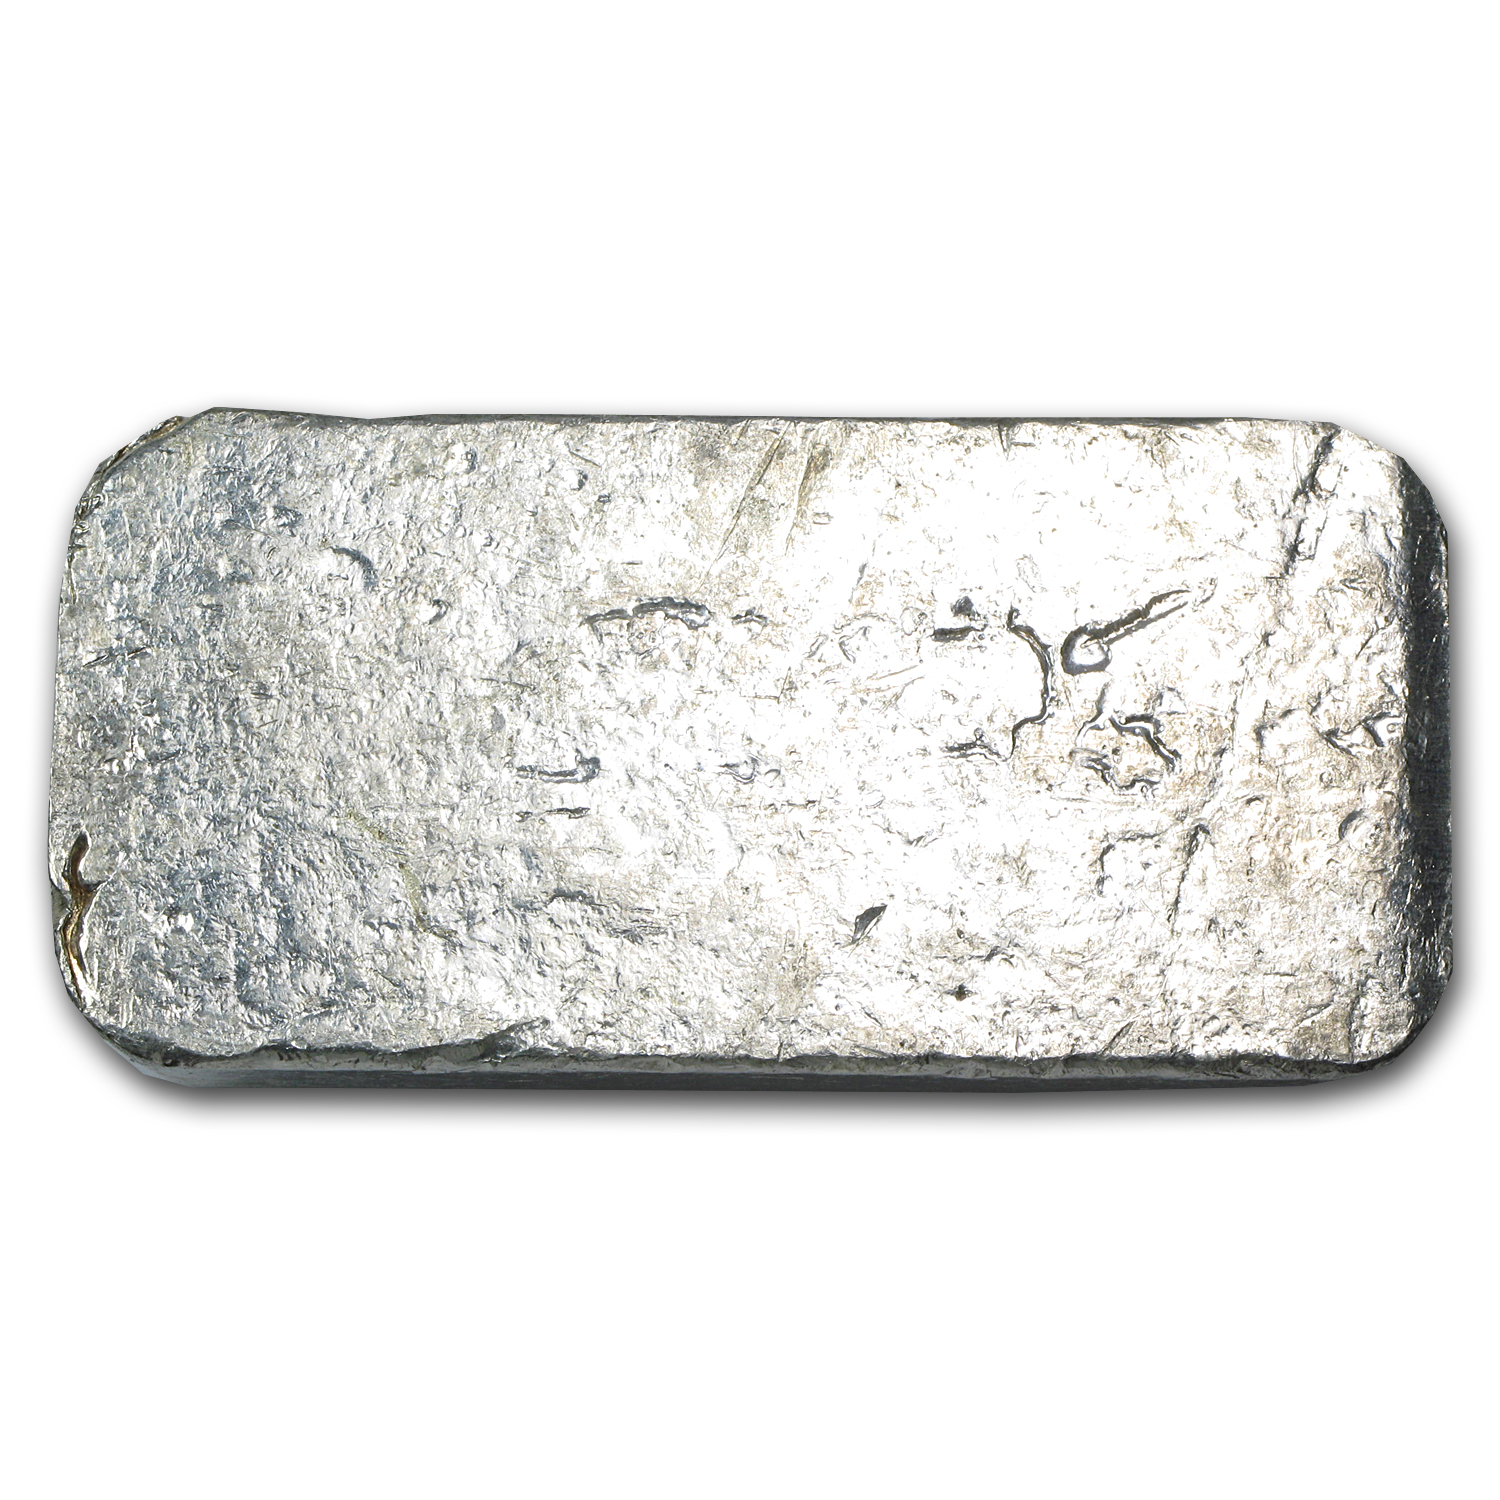 10.32 oz Silver Bar - Star Metals 10.3410.32